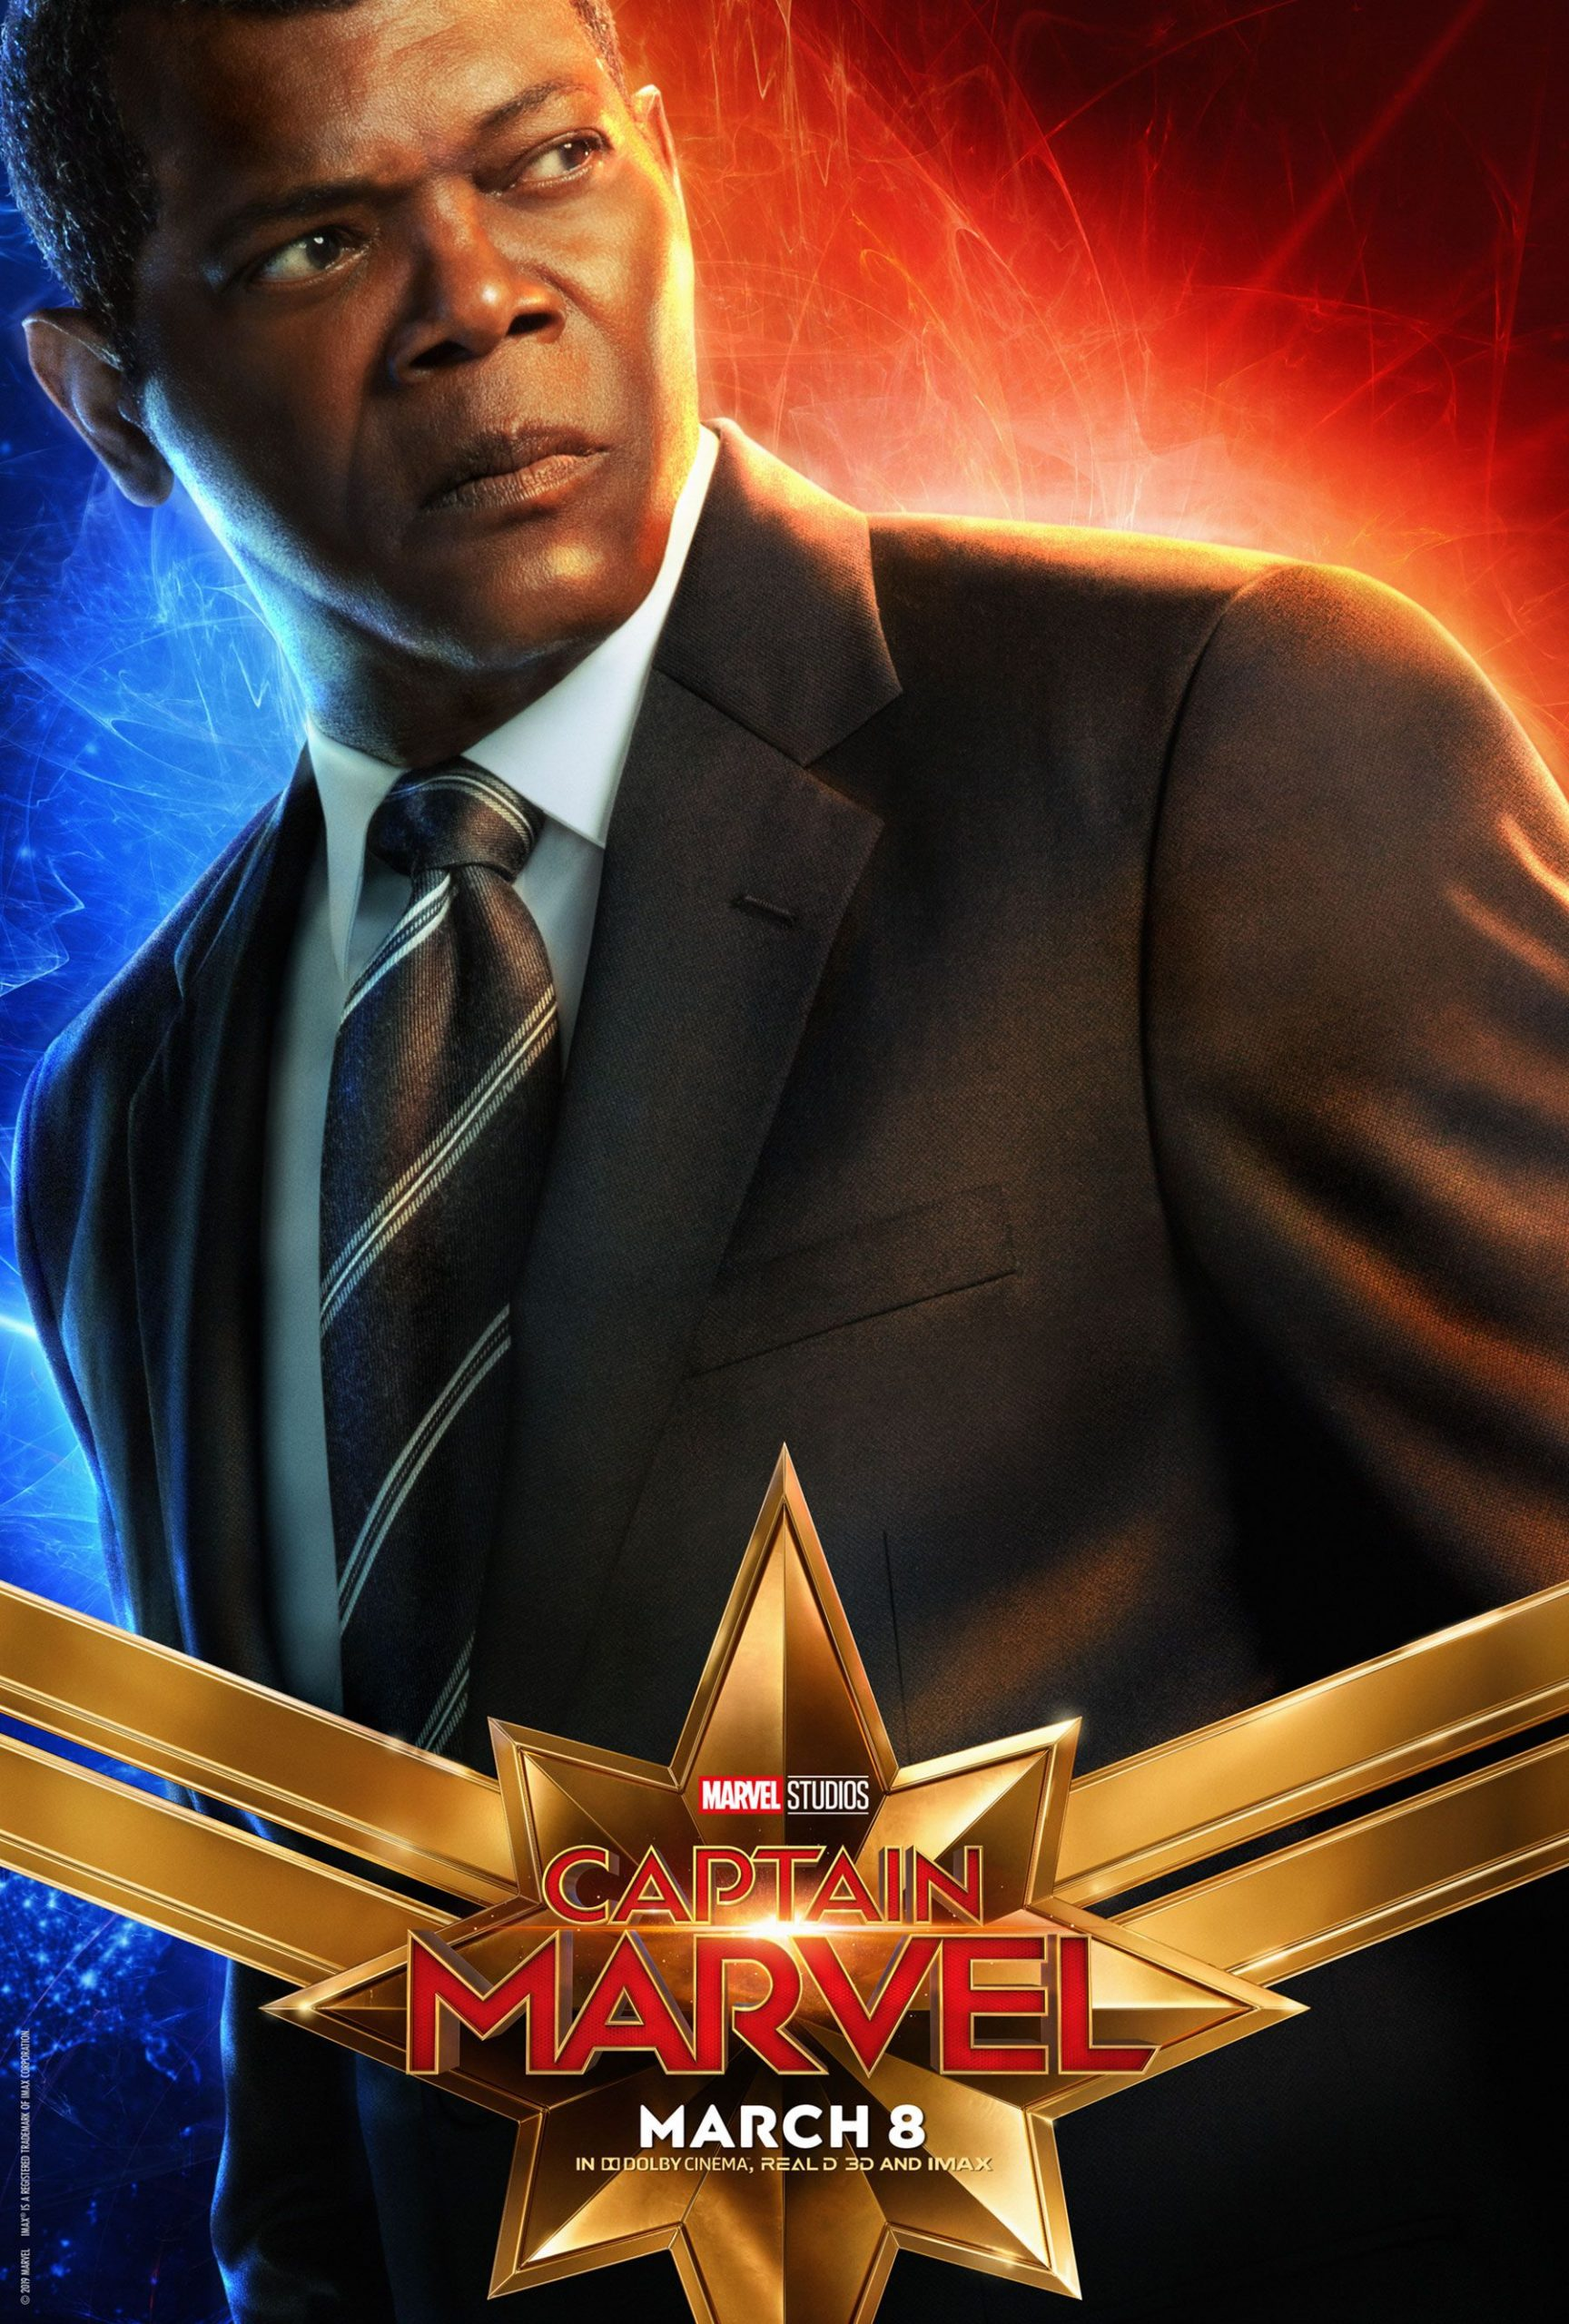 Captain Marvel Character Posters Samuel L Jackson as Nick Fury